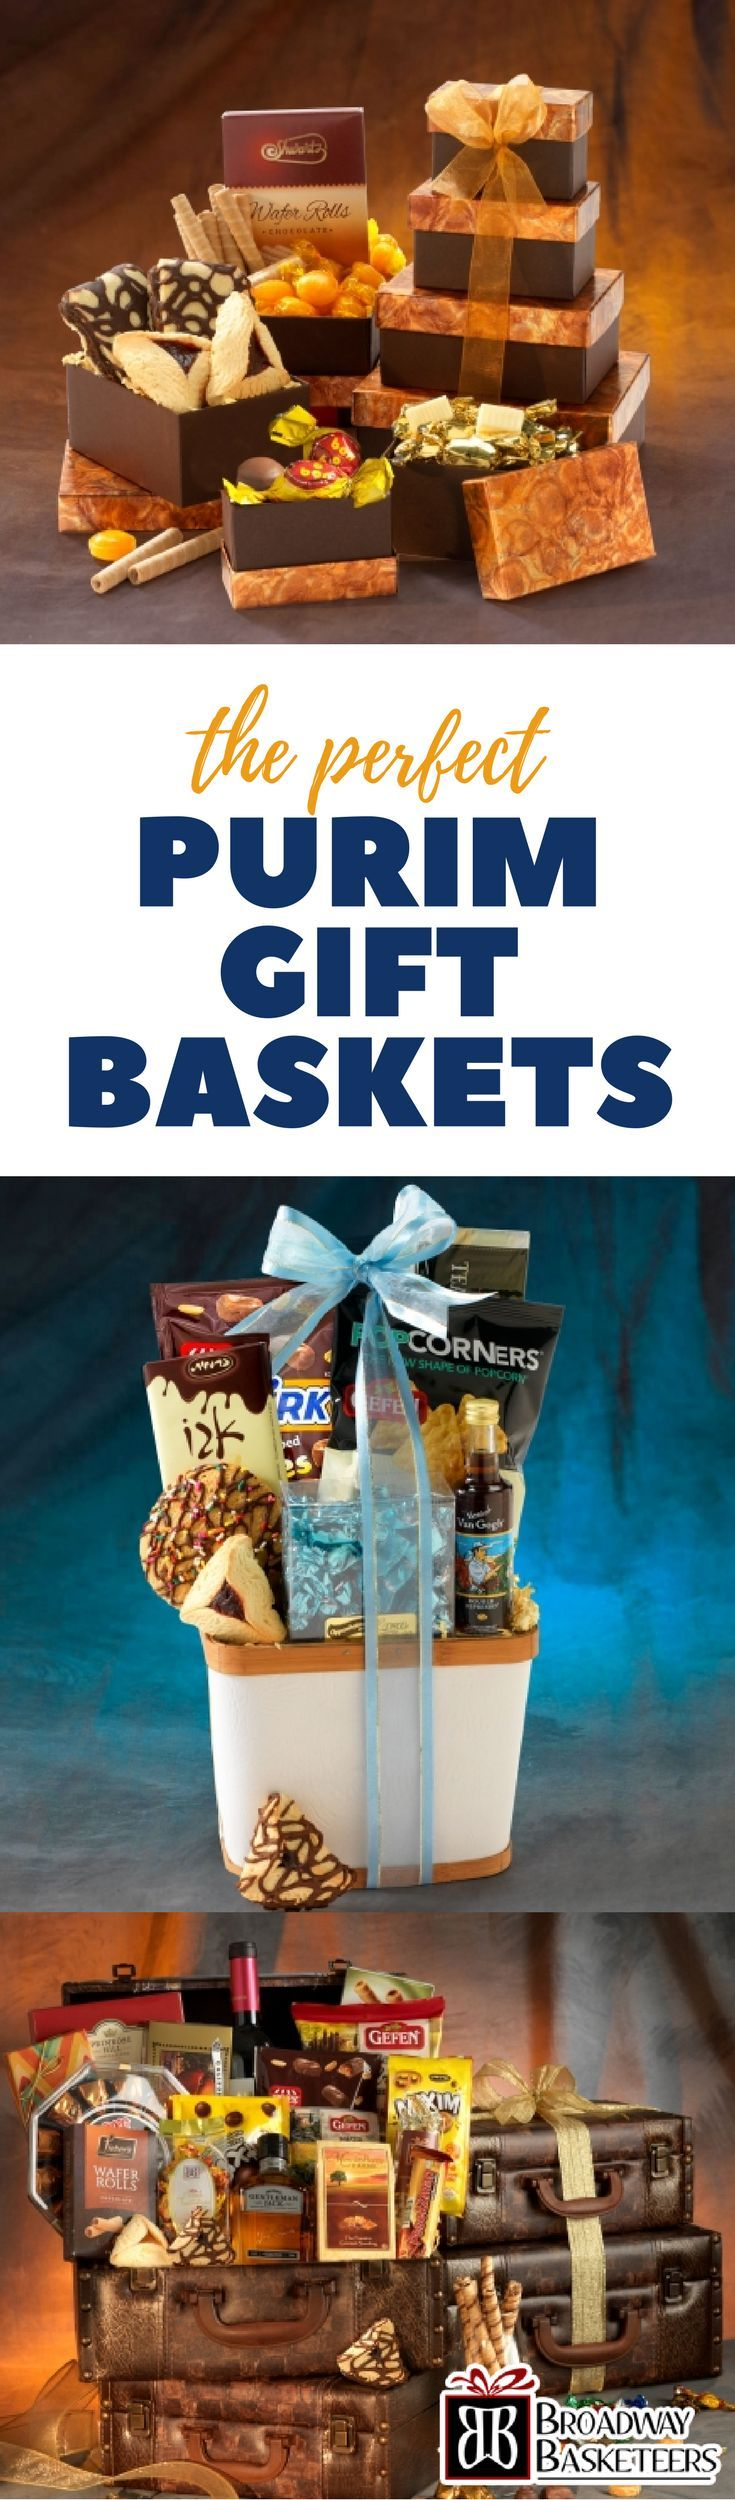 Purim Gift Baskets for Everyone You Love www.broadwaybasketeers.com/